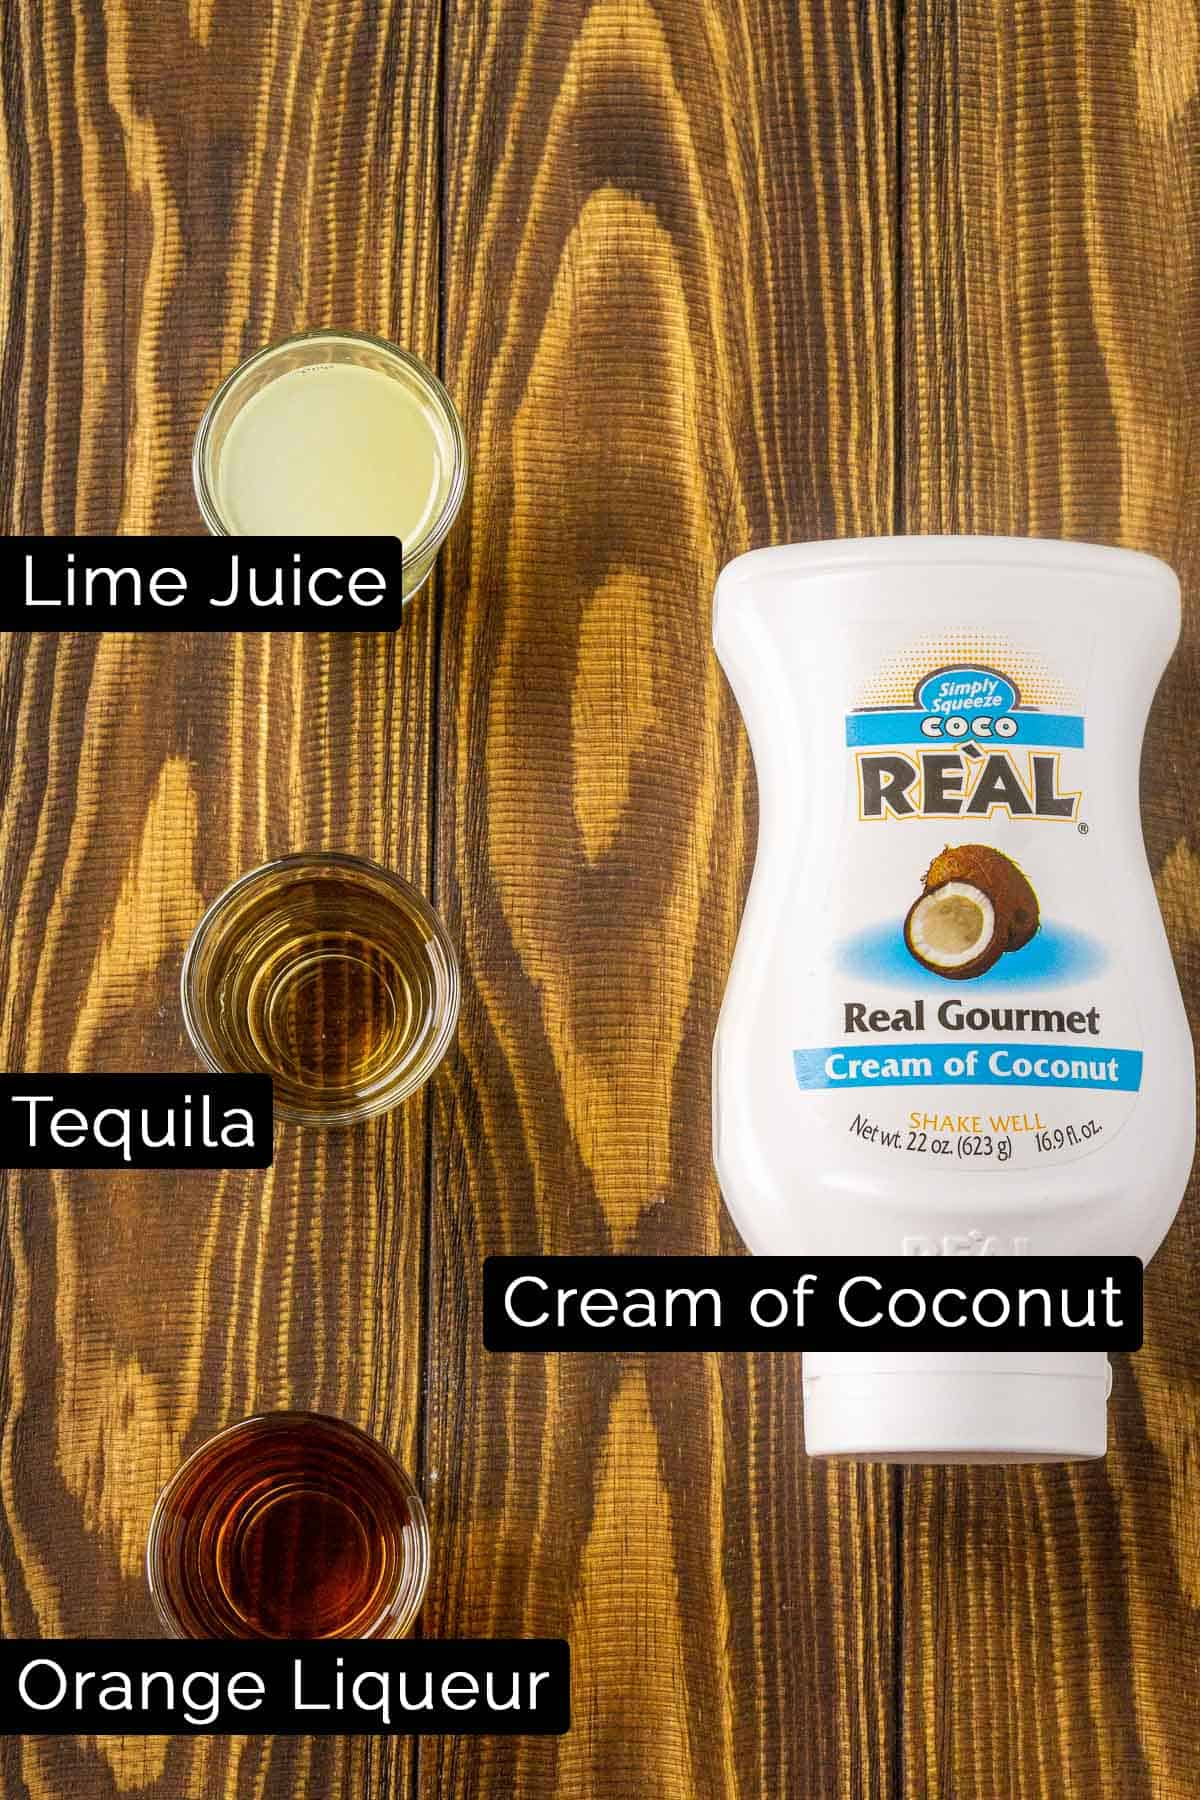 The coconut margarita ingredients with black and white labels on a wooden board.